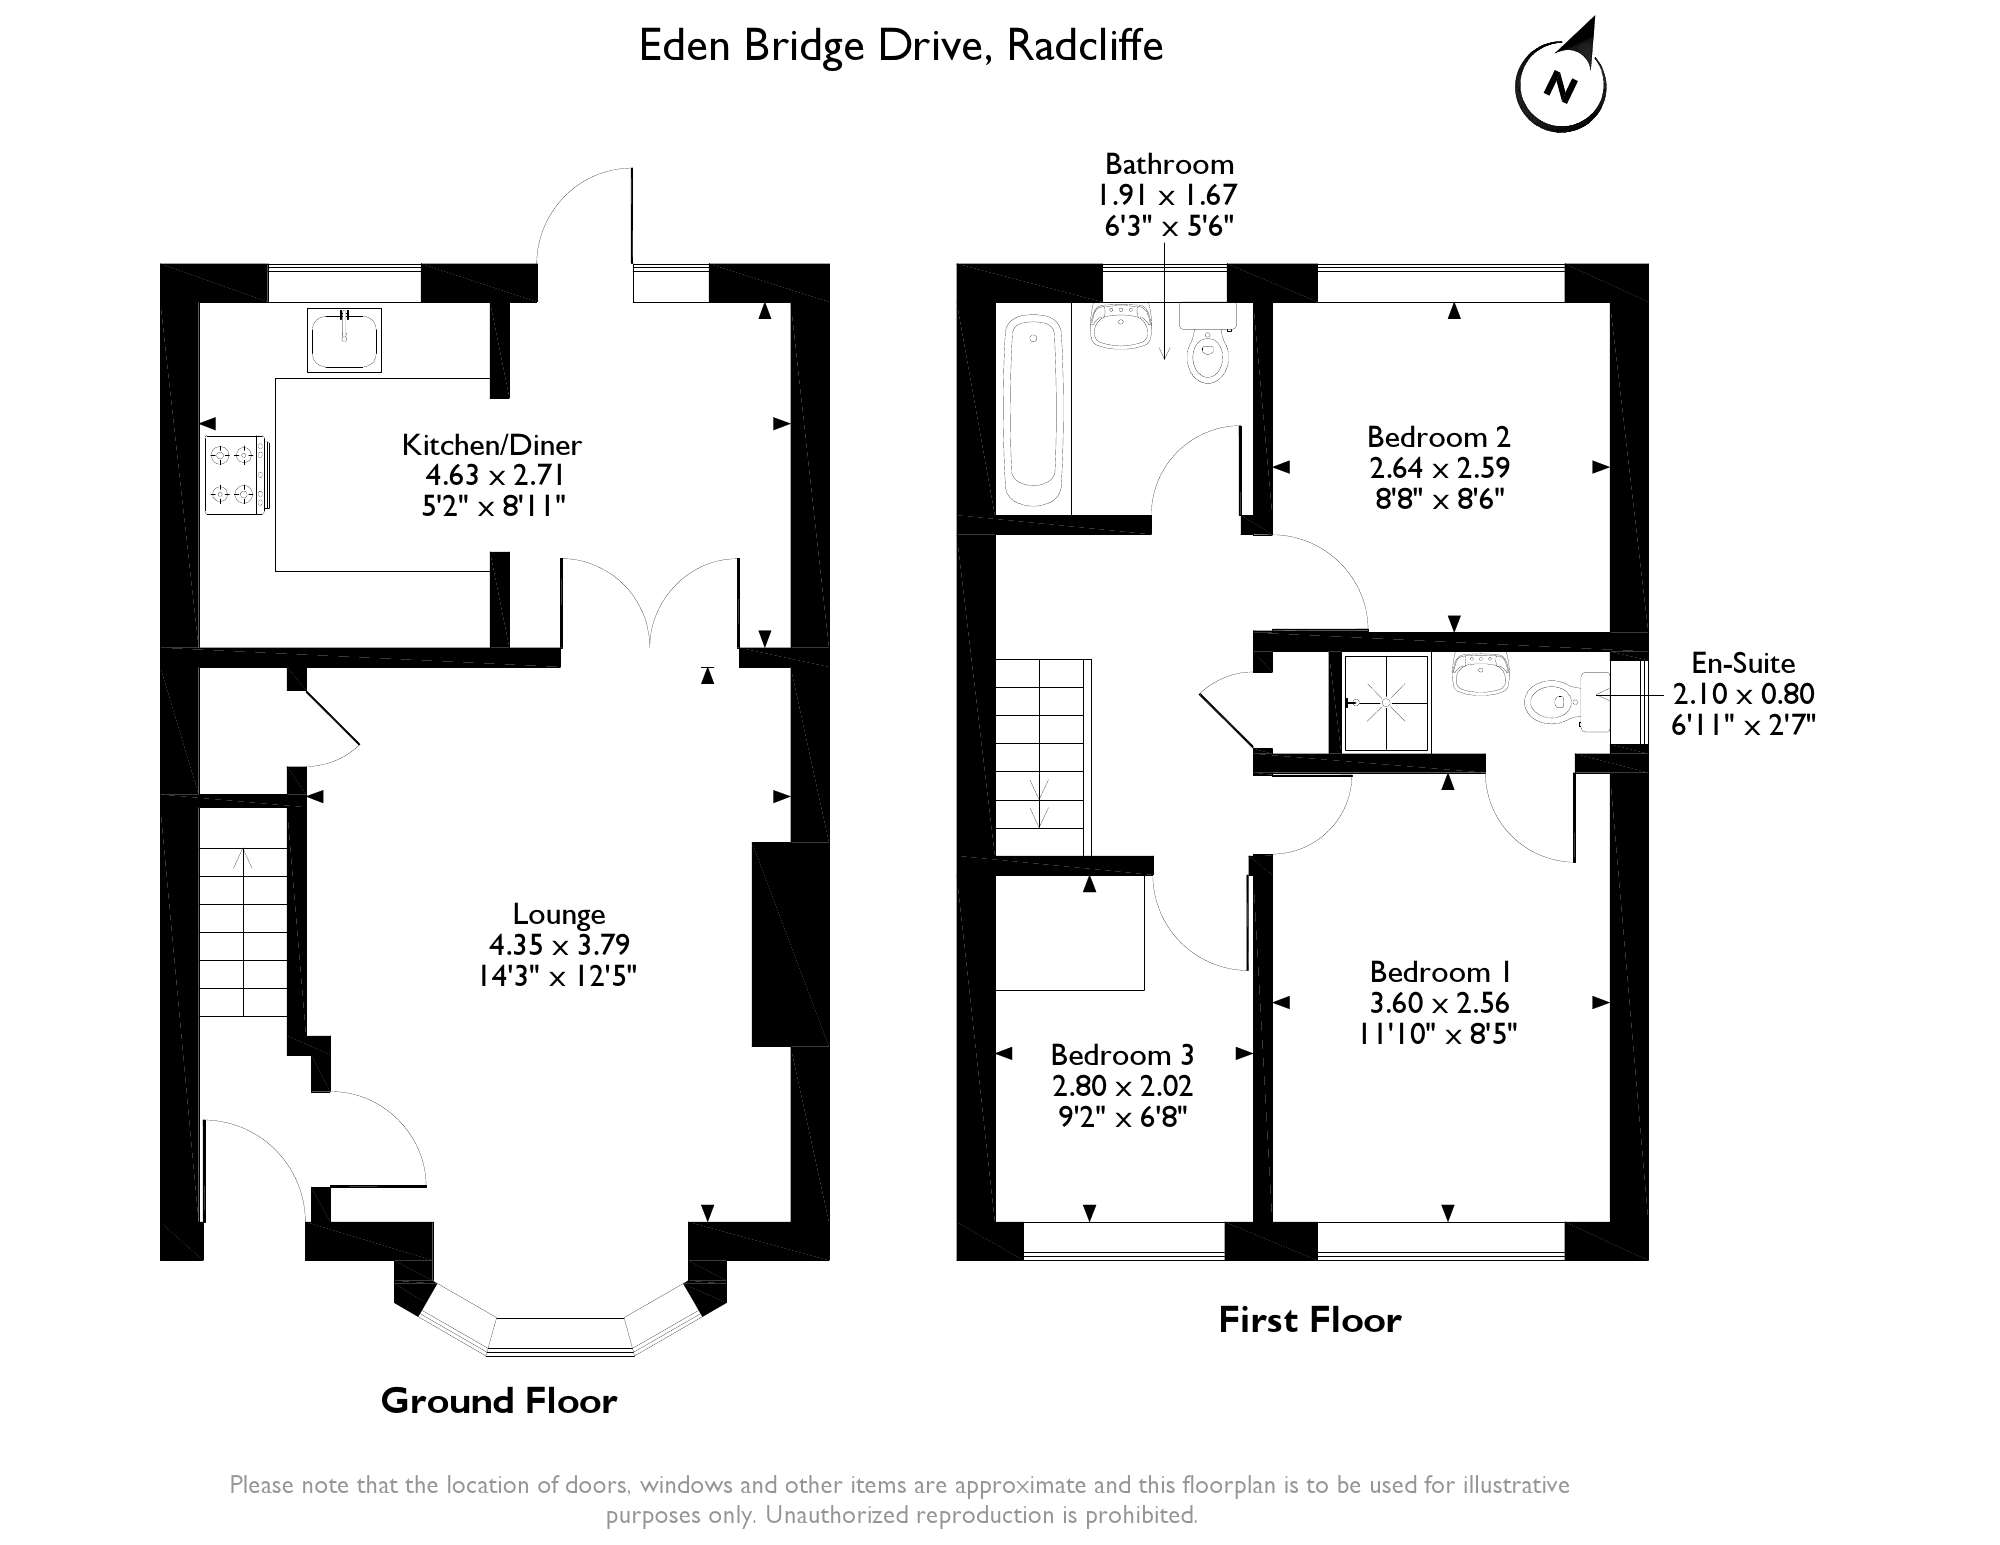 Eden Bridge Drive, Radcliffe, M26 floor plan